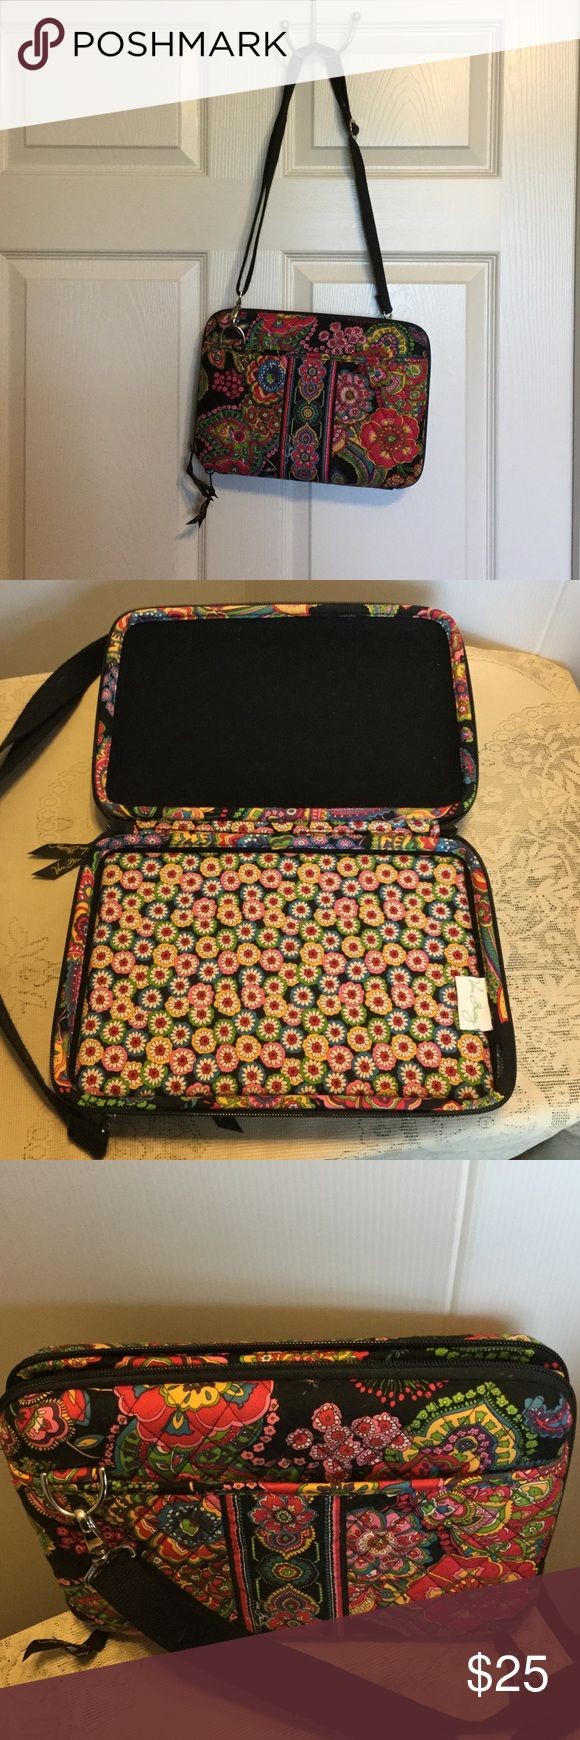 "Vera Bradley iPad Case This case is for a large iPad or a small computer.    It is 11 inches long and About  7 1/2"" to 8""i wide.  In excellent condition zipper pocket in front and additional pocket in the back Bags Mini Bags"